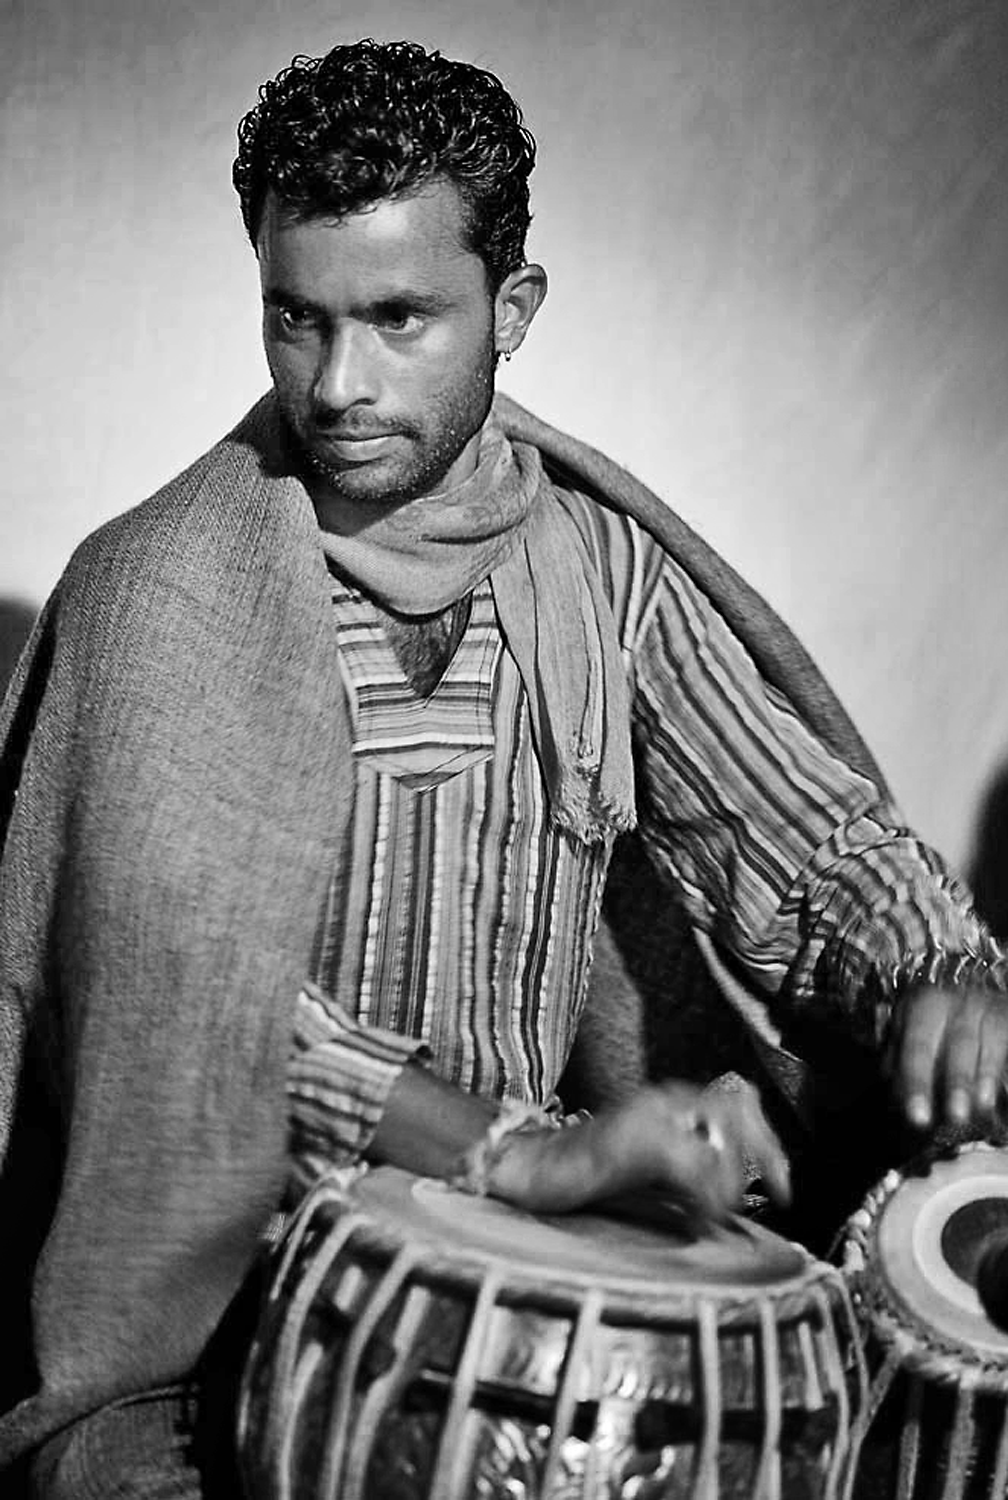 """Gino"", Master Tabla player, Manali, India"